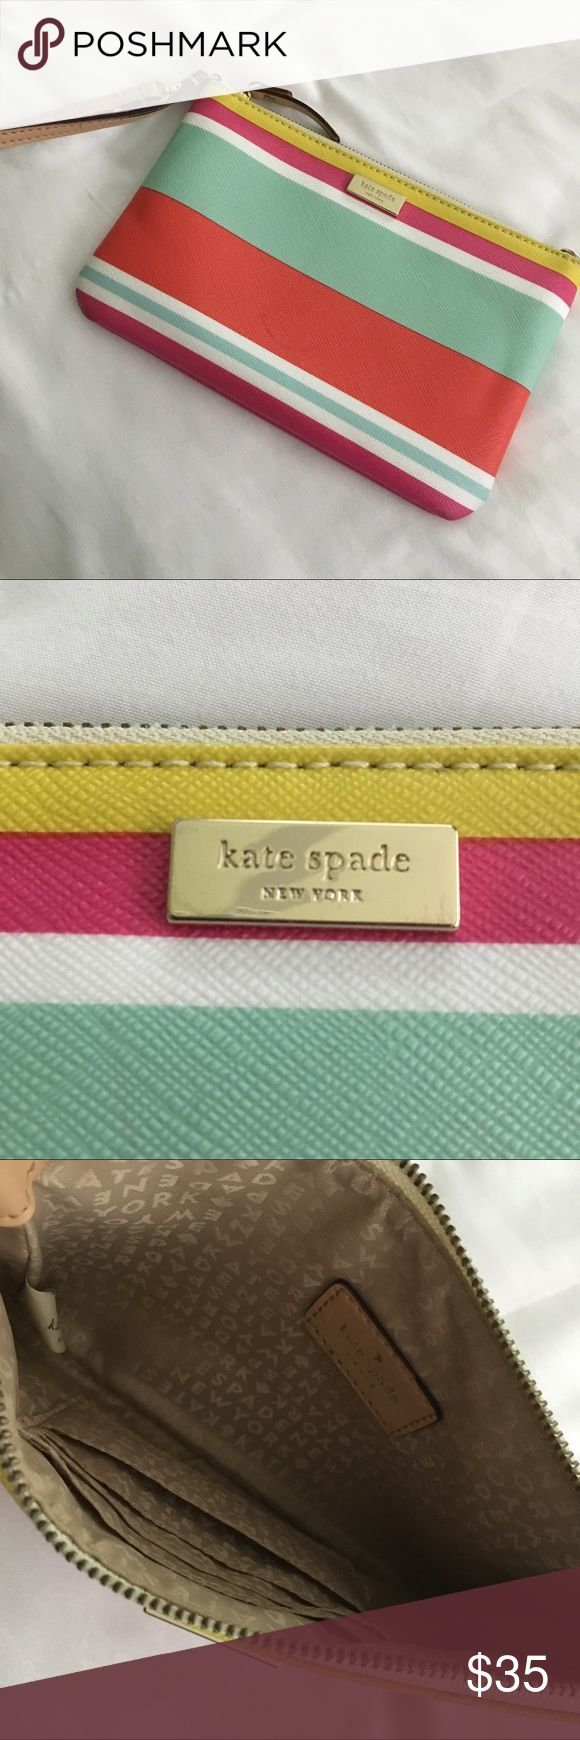 "Kate Spade Wristlet From the Kate Spade Outlet. Used very few times. Will hold phone, keys and has 3 spots for cards. I don't remember the ""original price"" so that's a guess. kate spade Bags Clutches & Wristlets"